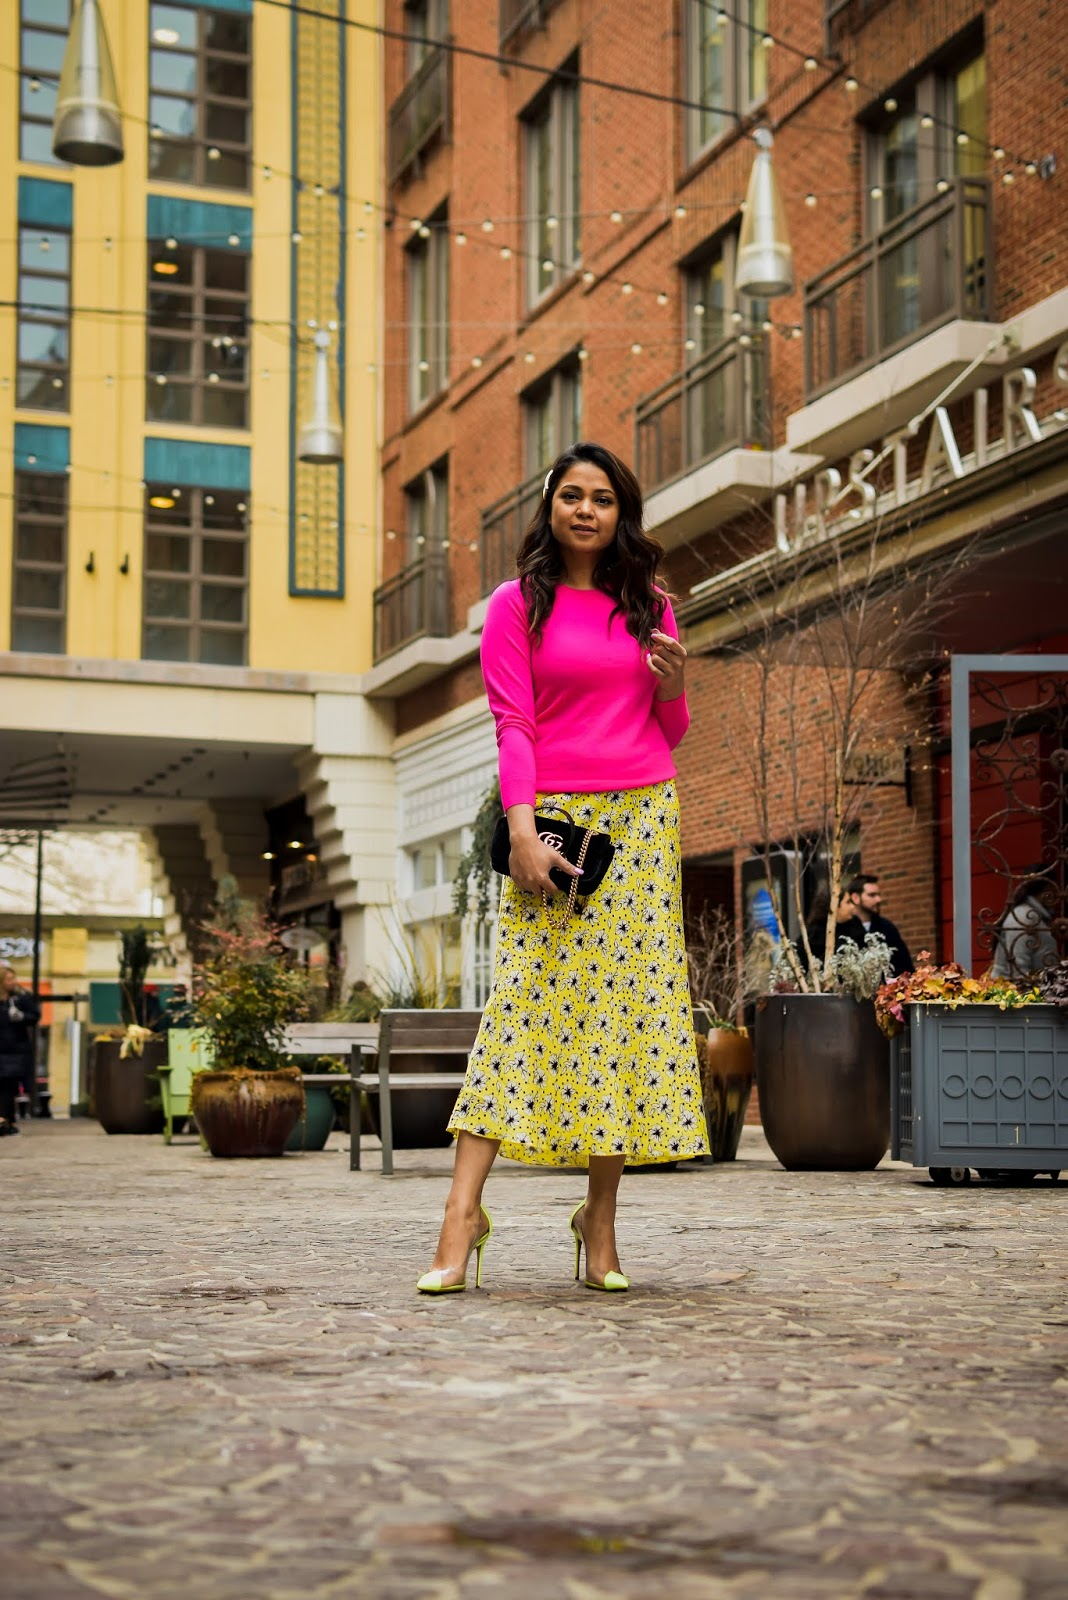 neon trend, how to wera neon this spring summer, zara floral slip skirt, yellow skirt, neon sweater, neon schutz vinyl pump, bethesda row, fashion, style, myriad musings, saumya shiohare